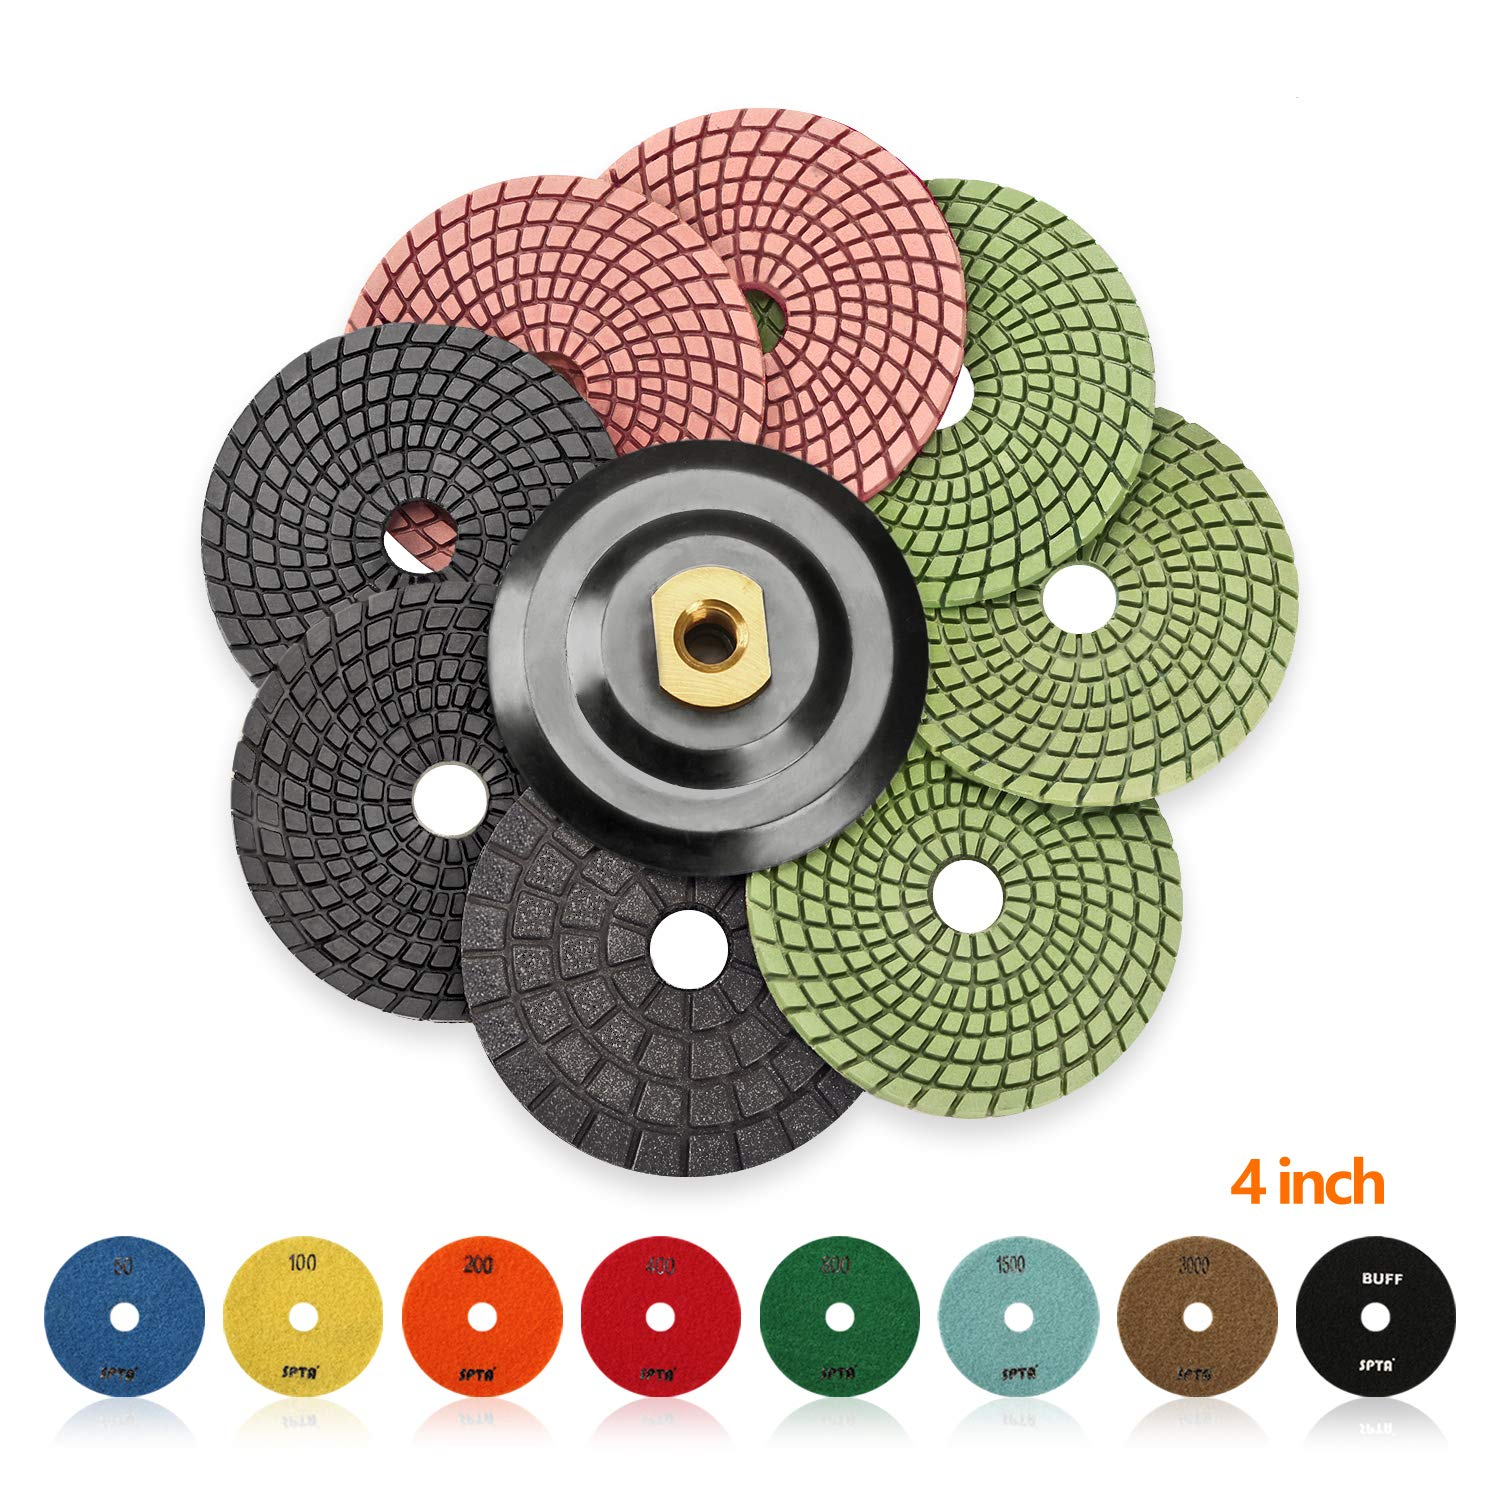 SPTA 8pcs Diamond Wet Polishing Pads Set For Granite Stone Concrete Marble Floor Grinder or Polisher, 50#-3000# with Hook & Loop Backing Holder Disc (4 inch) by SPTA (Image #1)